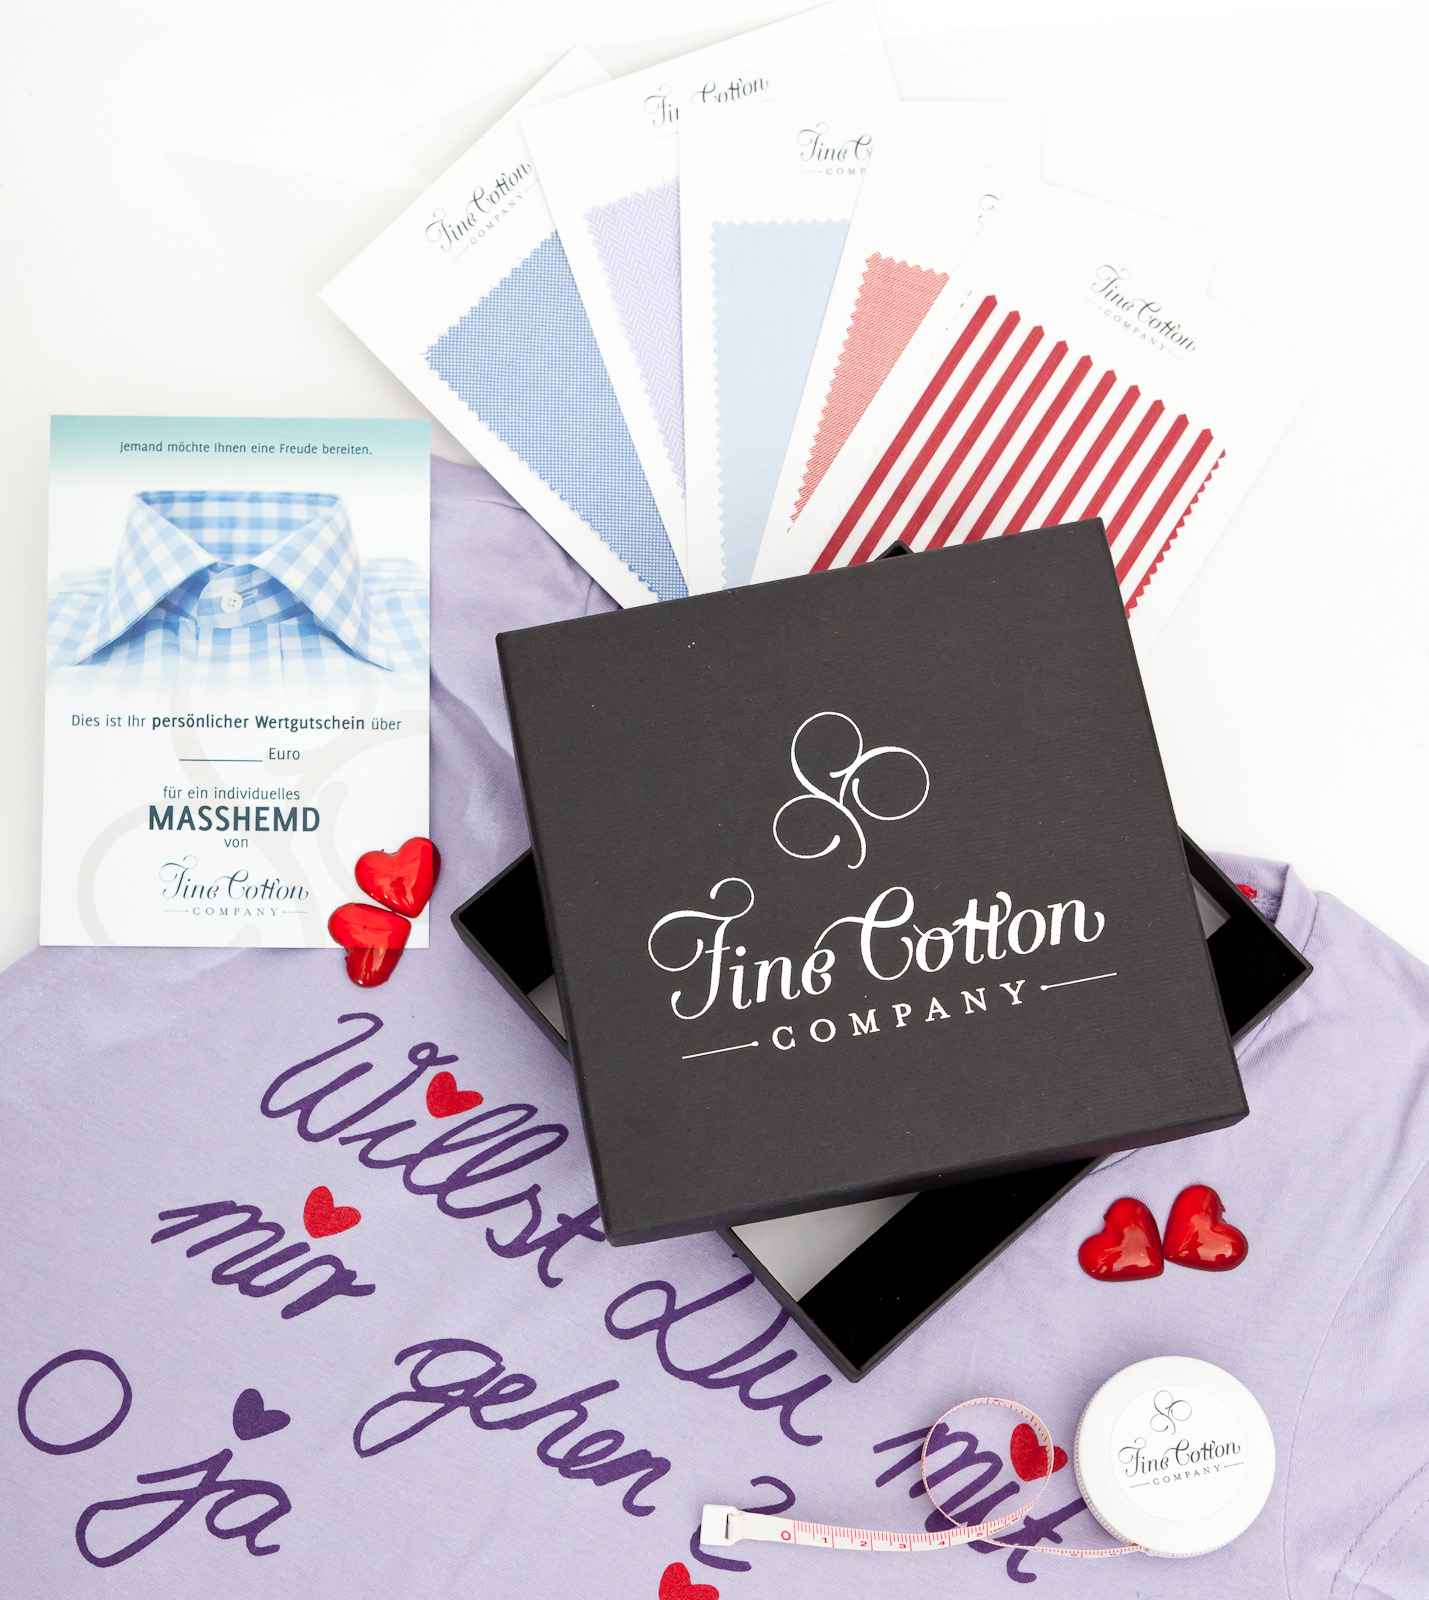 Valentinstag Geschenk Fur Manner Hemd Nach Mass Fine Cotton Company